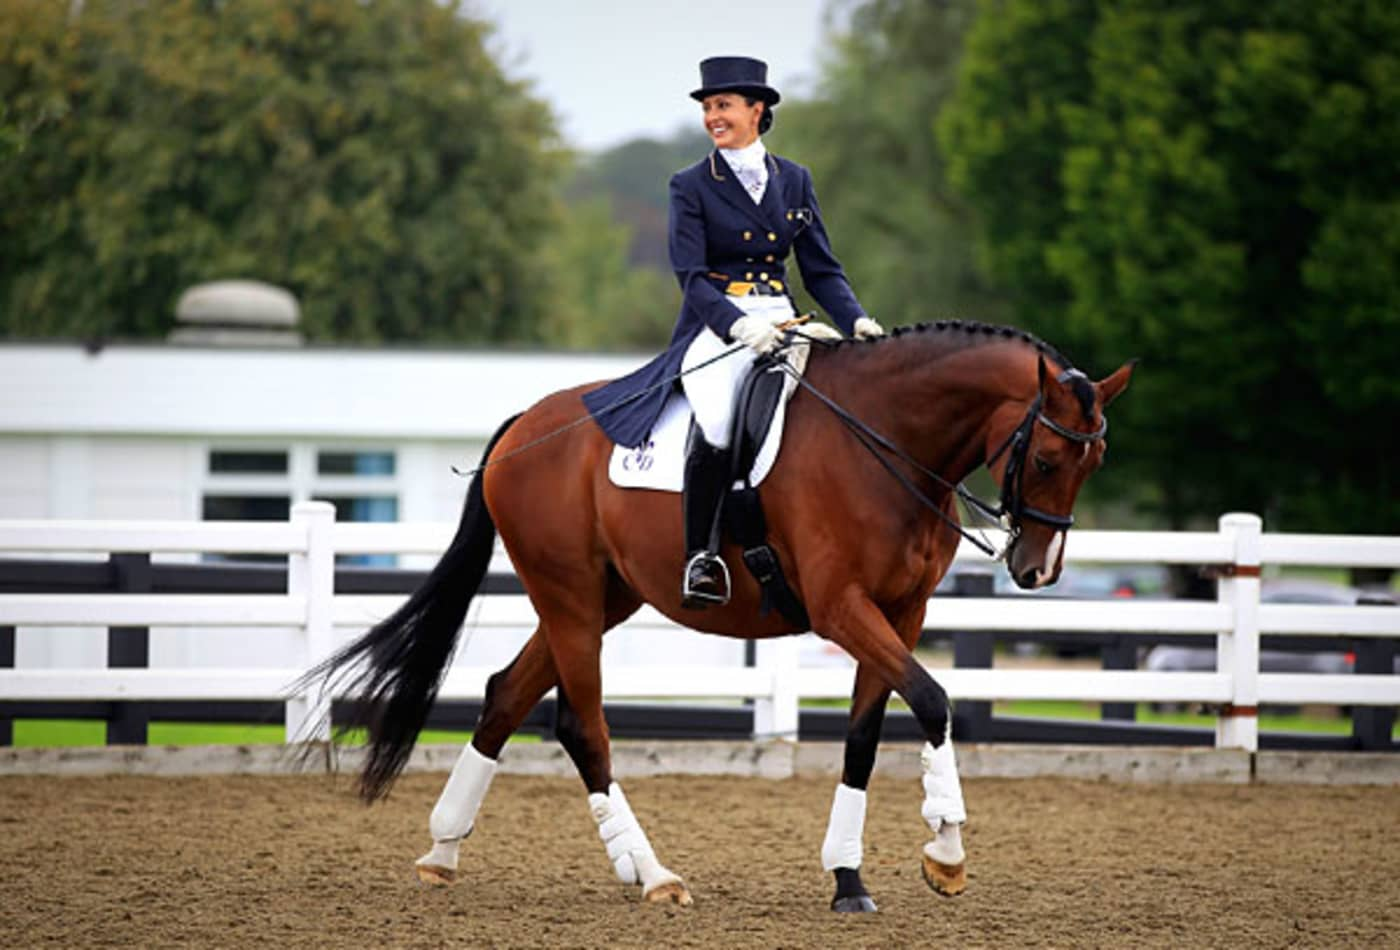 48816422 Dressage-Sports-for-the-One-Percent-CNBC.jpg